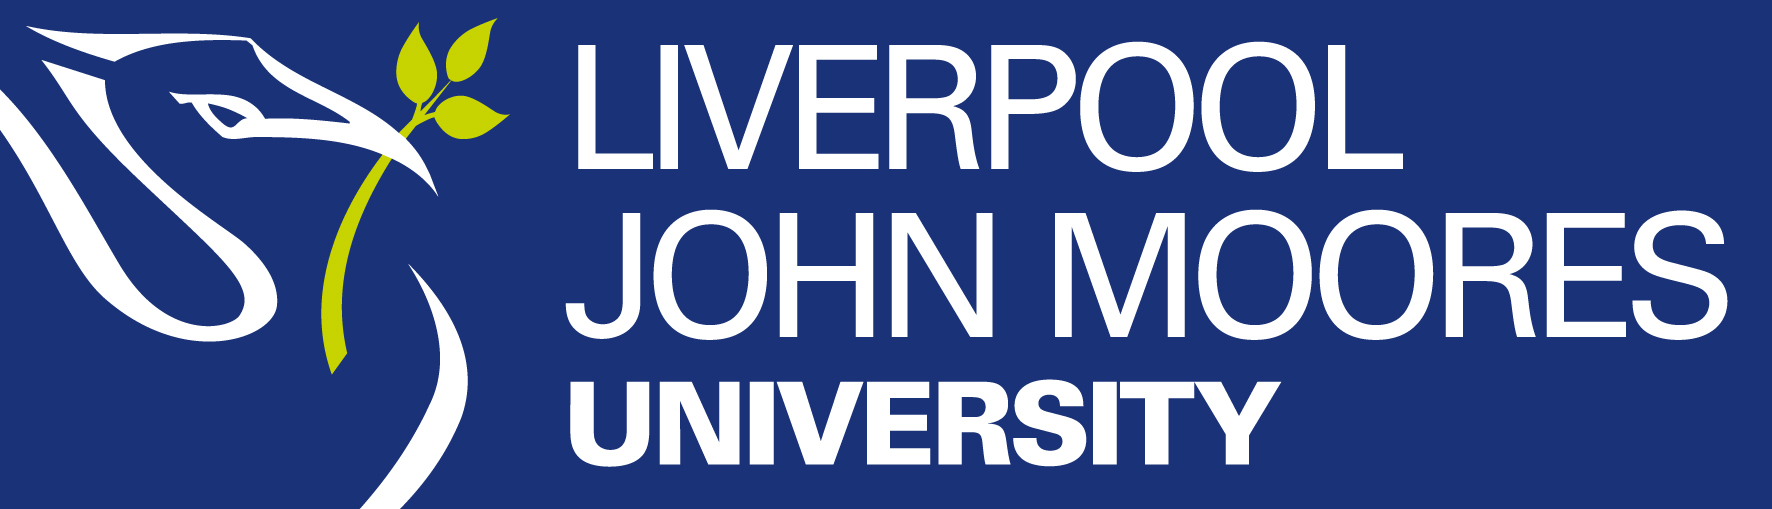 ljmulogo close crop 1